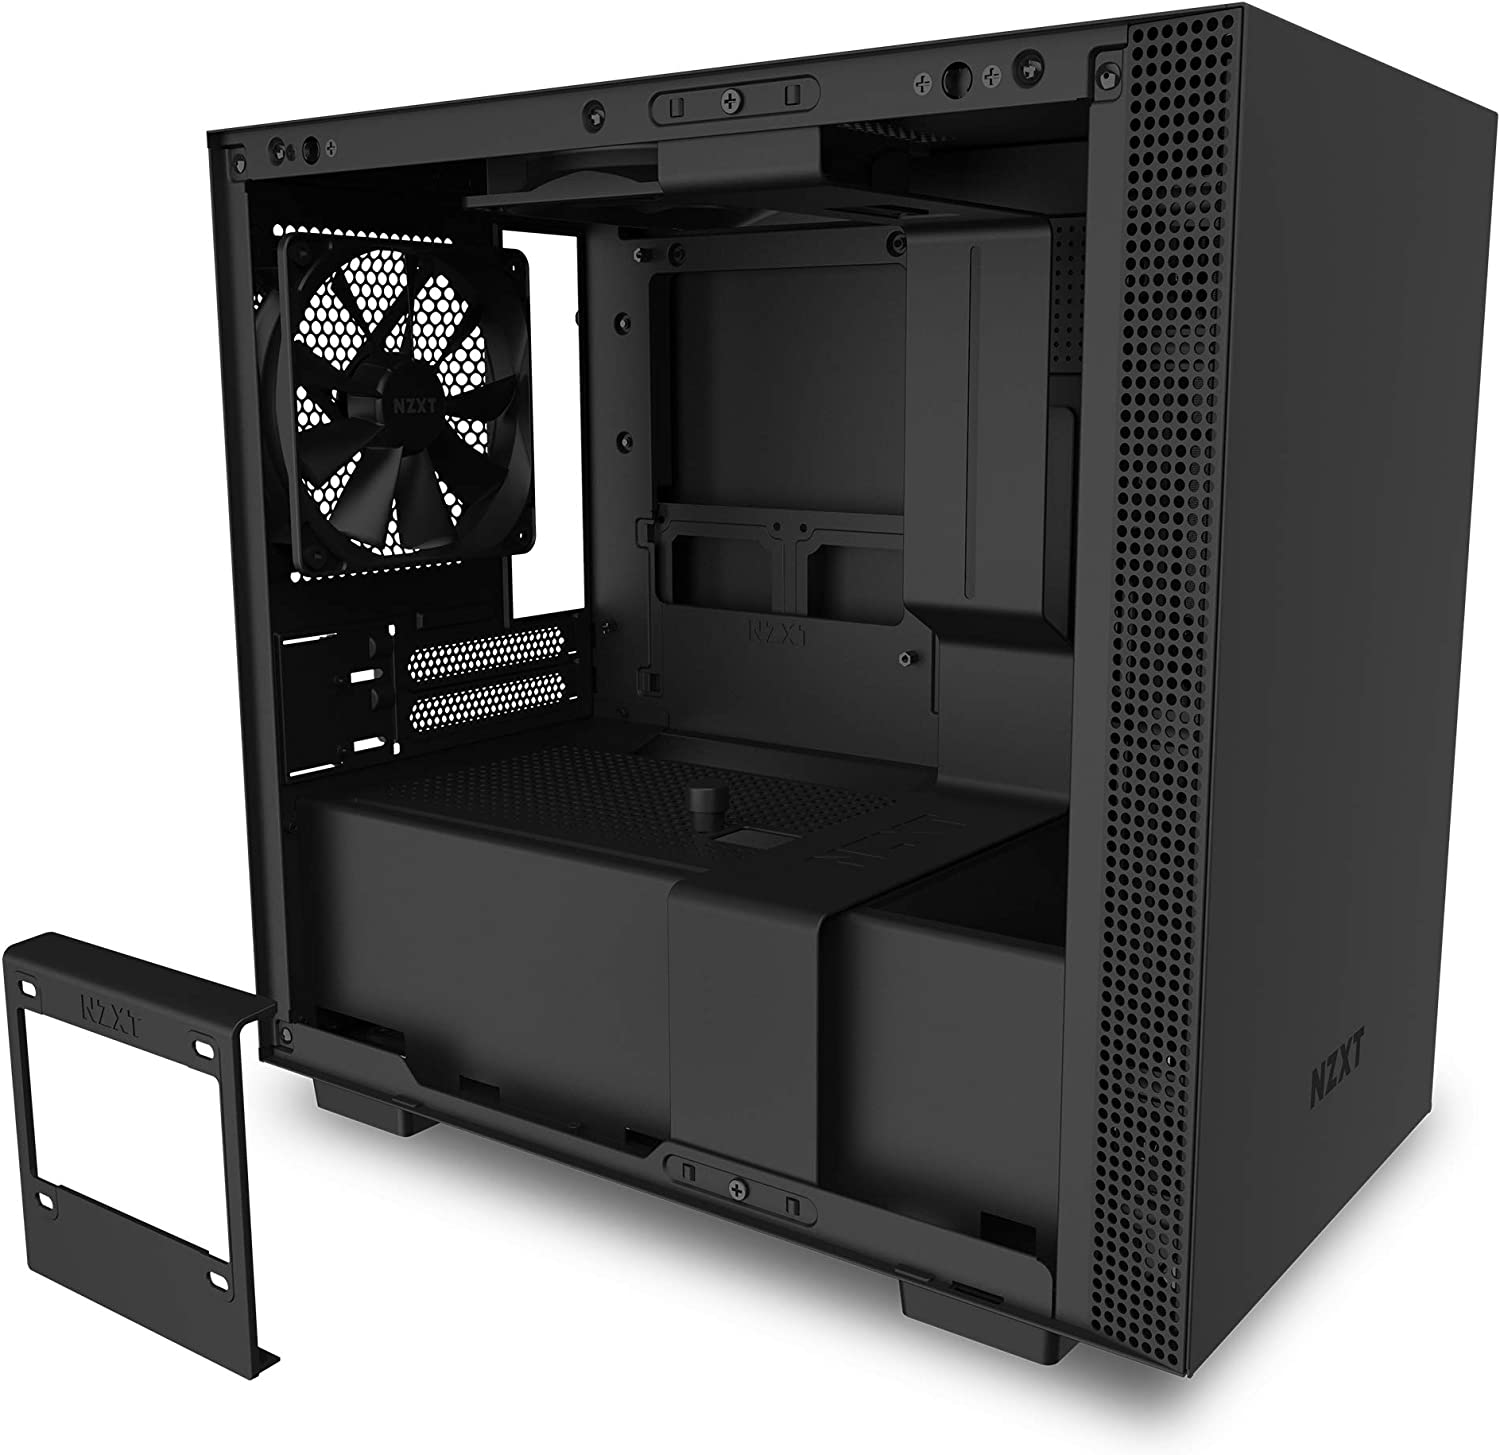 Water-Cooling Ready NZXT H710 ATX Mid Tower PC Gaming Case Quick-Release Tempered Glass Side Panel Black//Red Front I//O USB Type-C Port Steel Construction Cable Management System